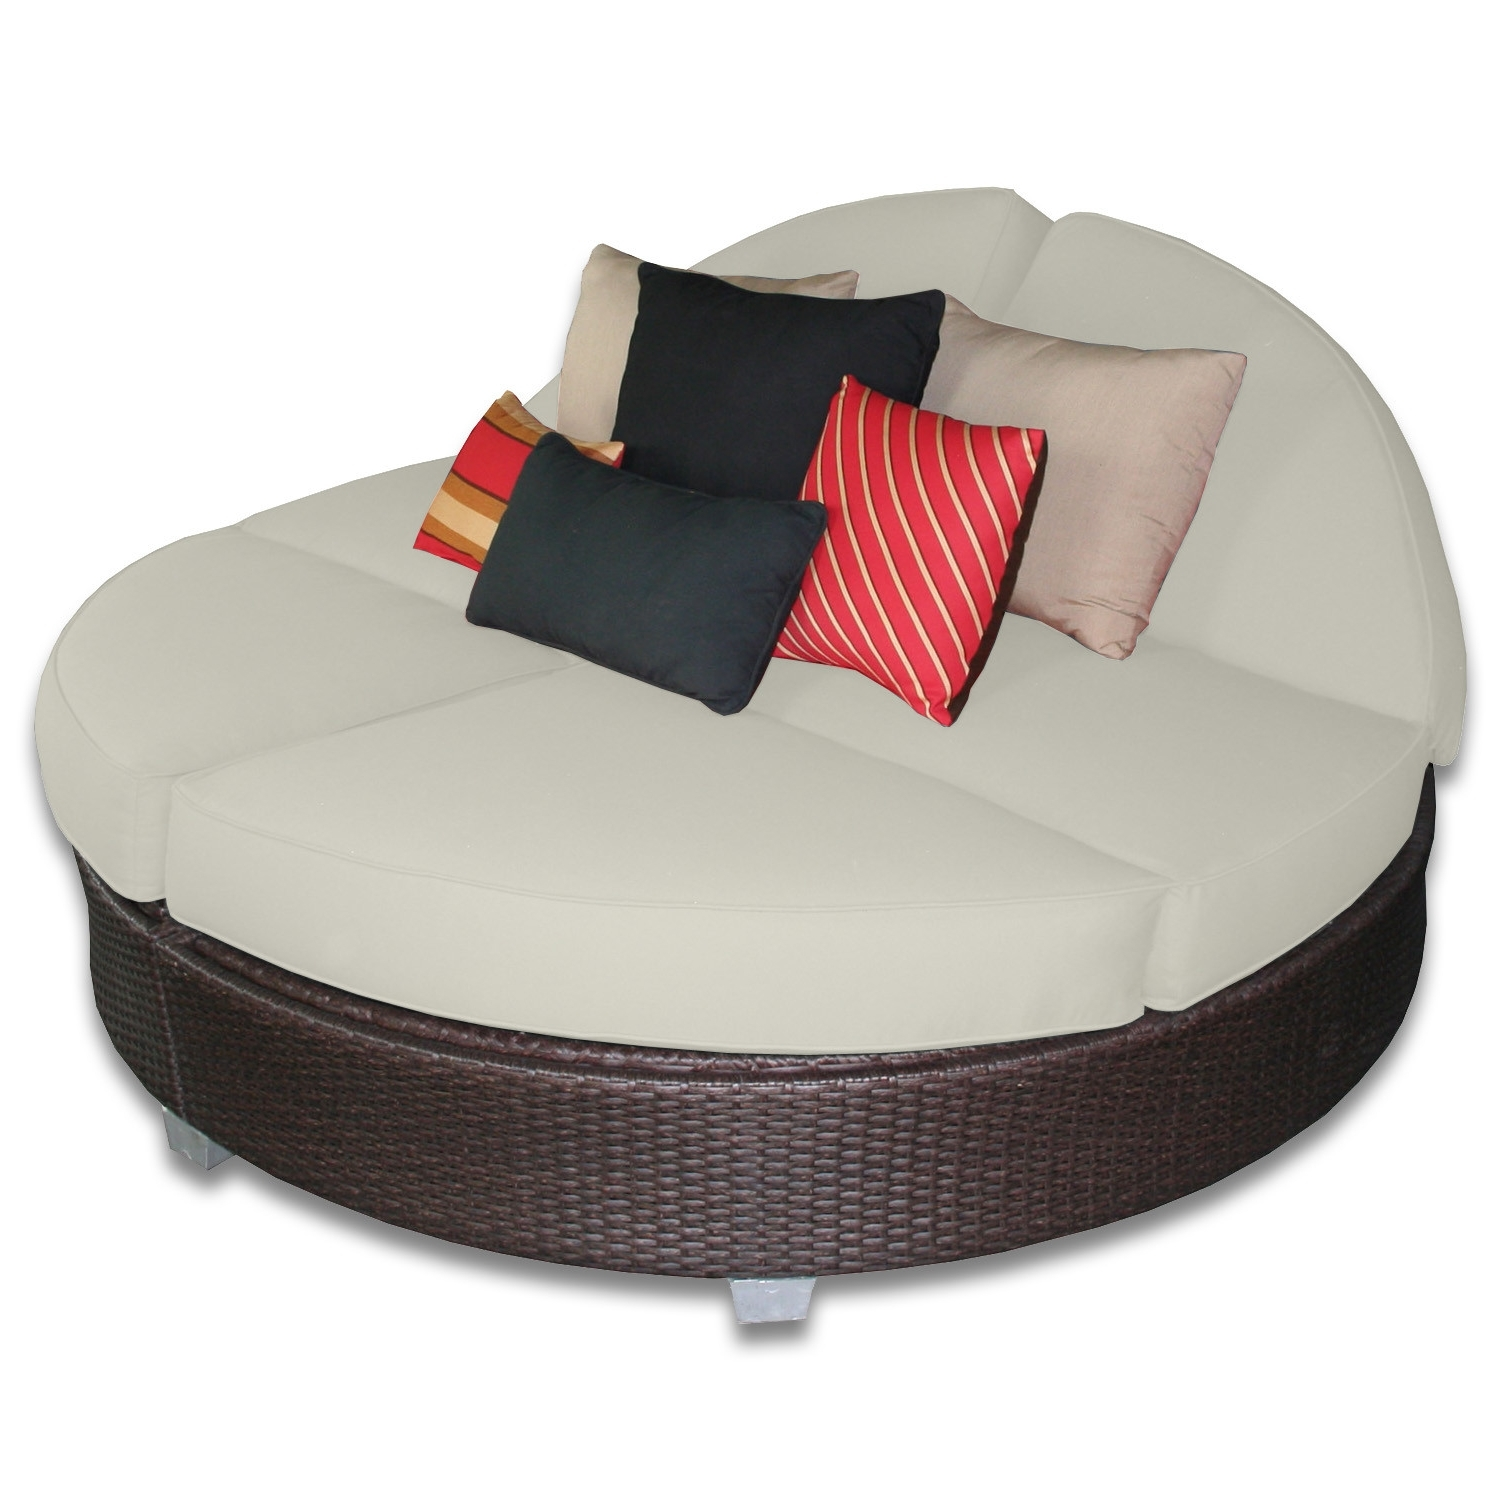 Preferred Round Chaises Inside Chaise Modern (View 7 of 15)